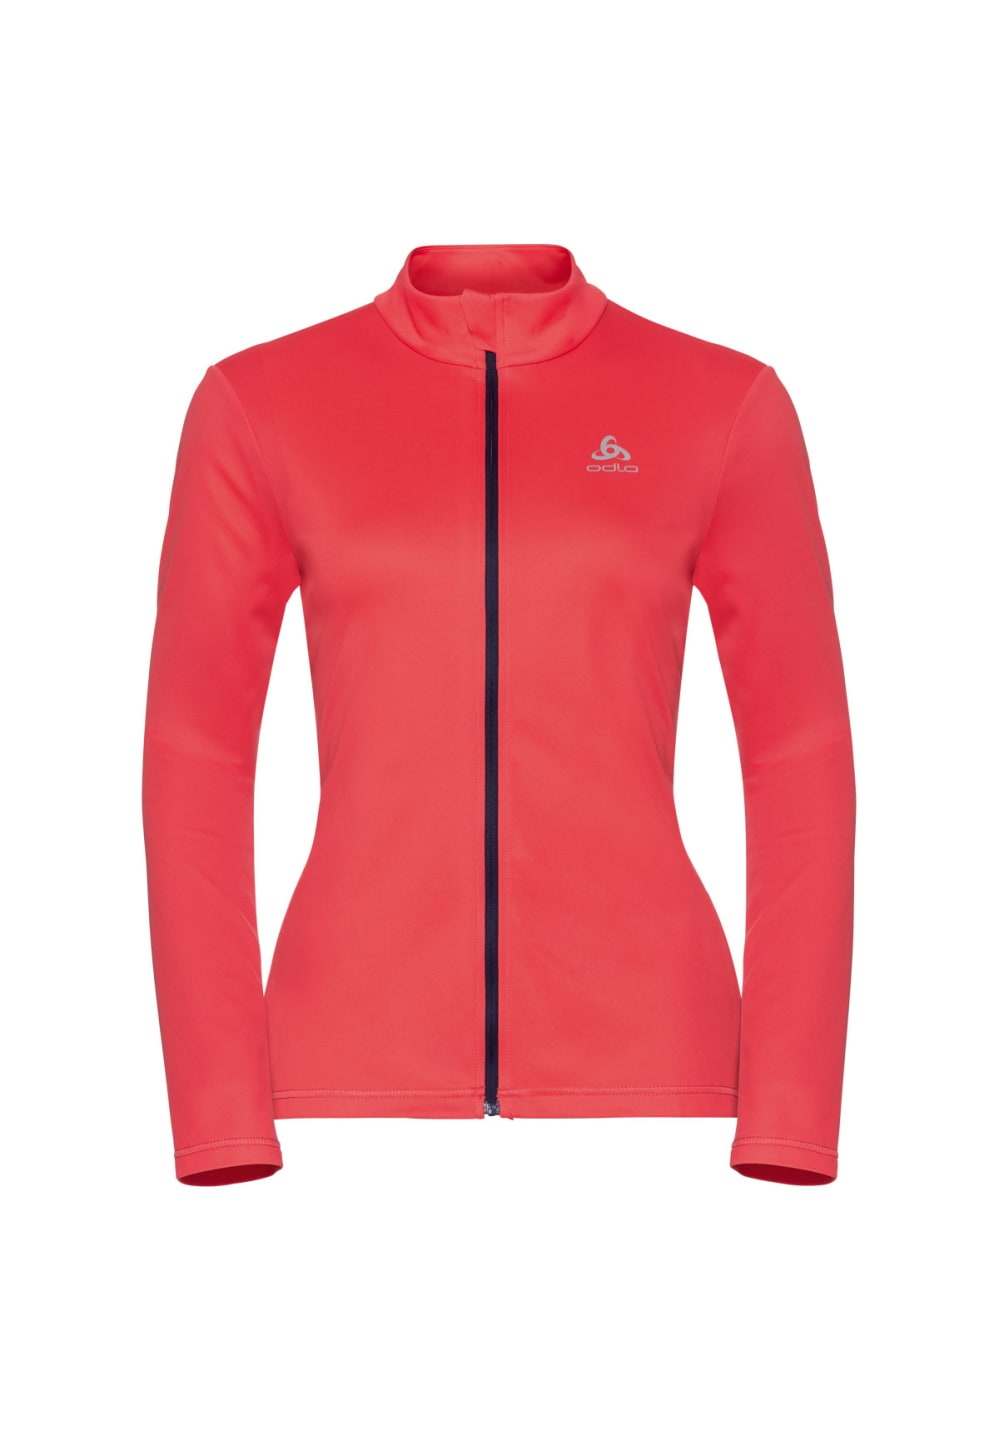 Odlo Midlayer Full Zip Koya Light - Laufjacken für Damen - Rot, Gr. M